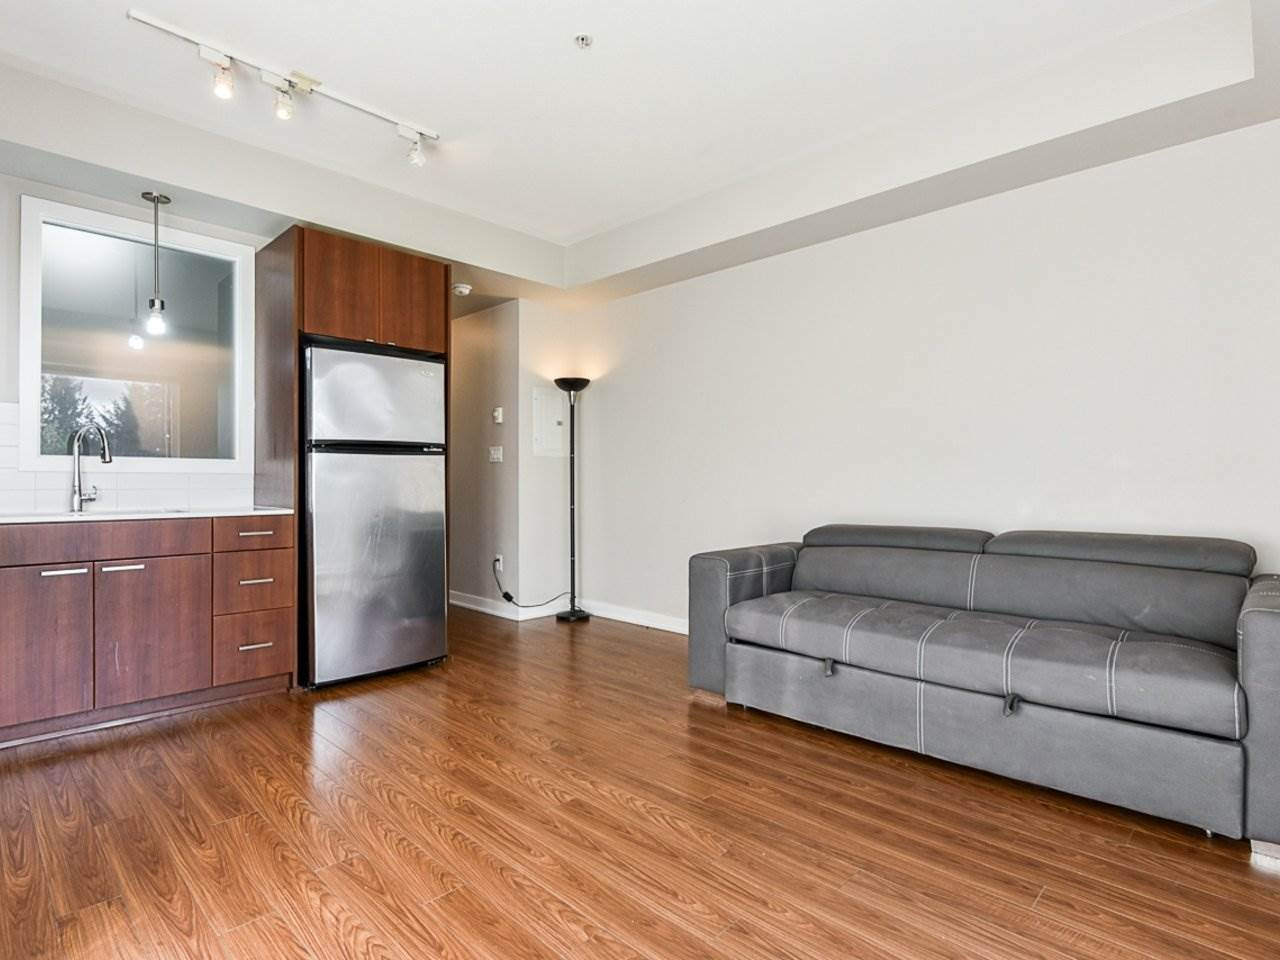 329 13321 102A AVENUE - Whalley Apartment/Condo for sale, 1 Bedroom (R2508611) - #10